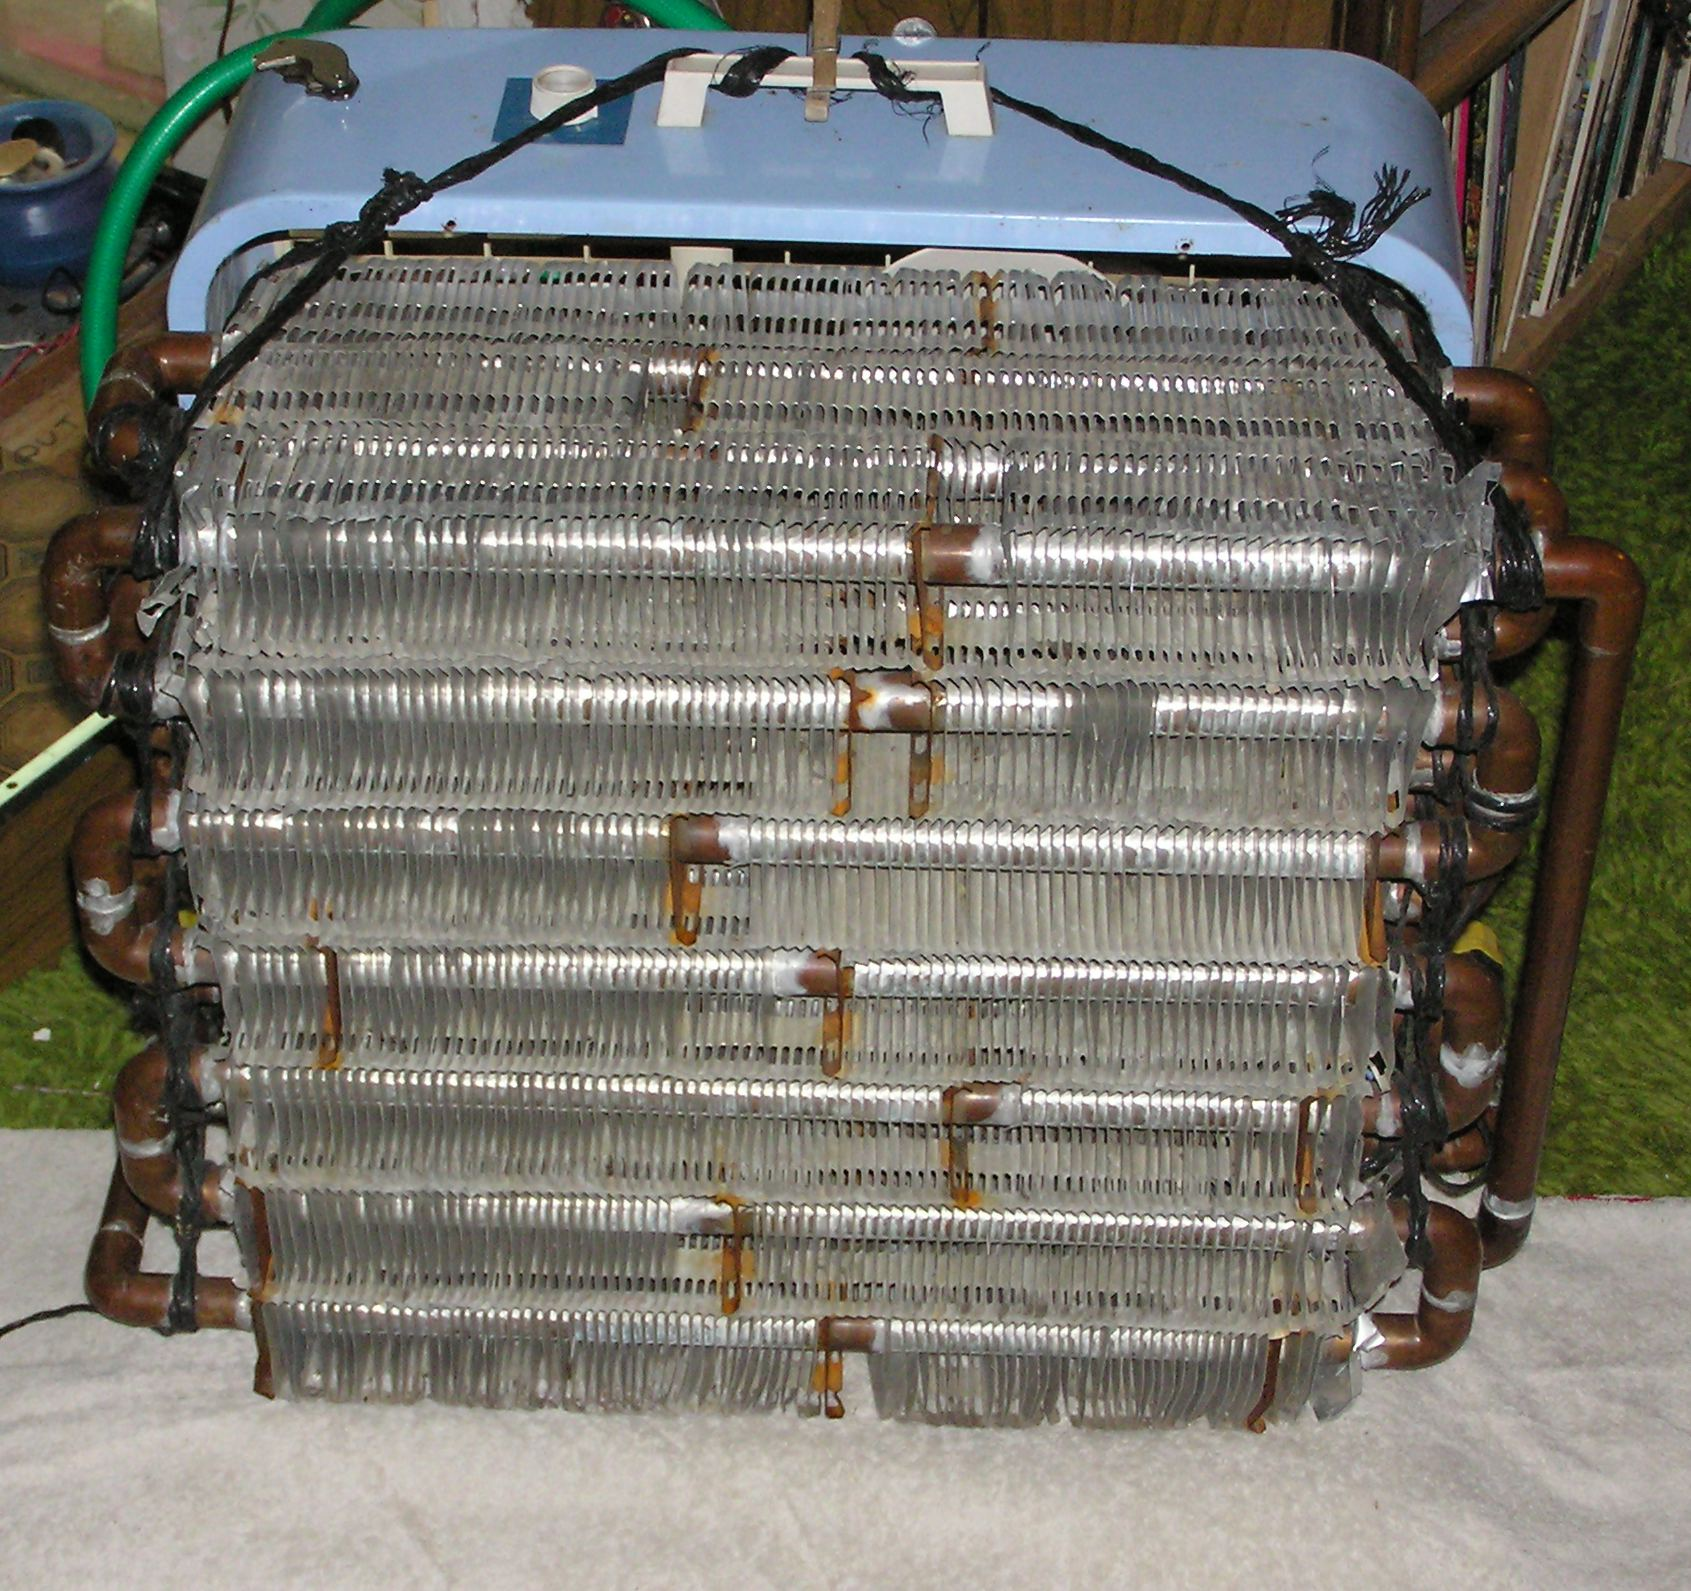 Free Air Conditioning 7 Steps With Pictures Instructables